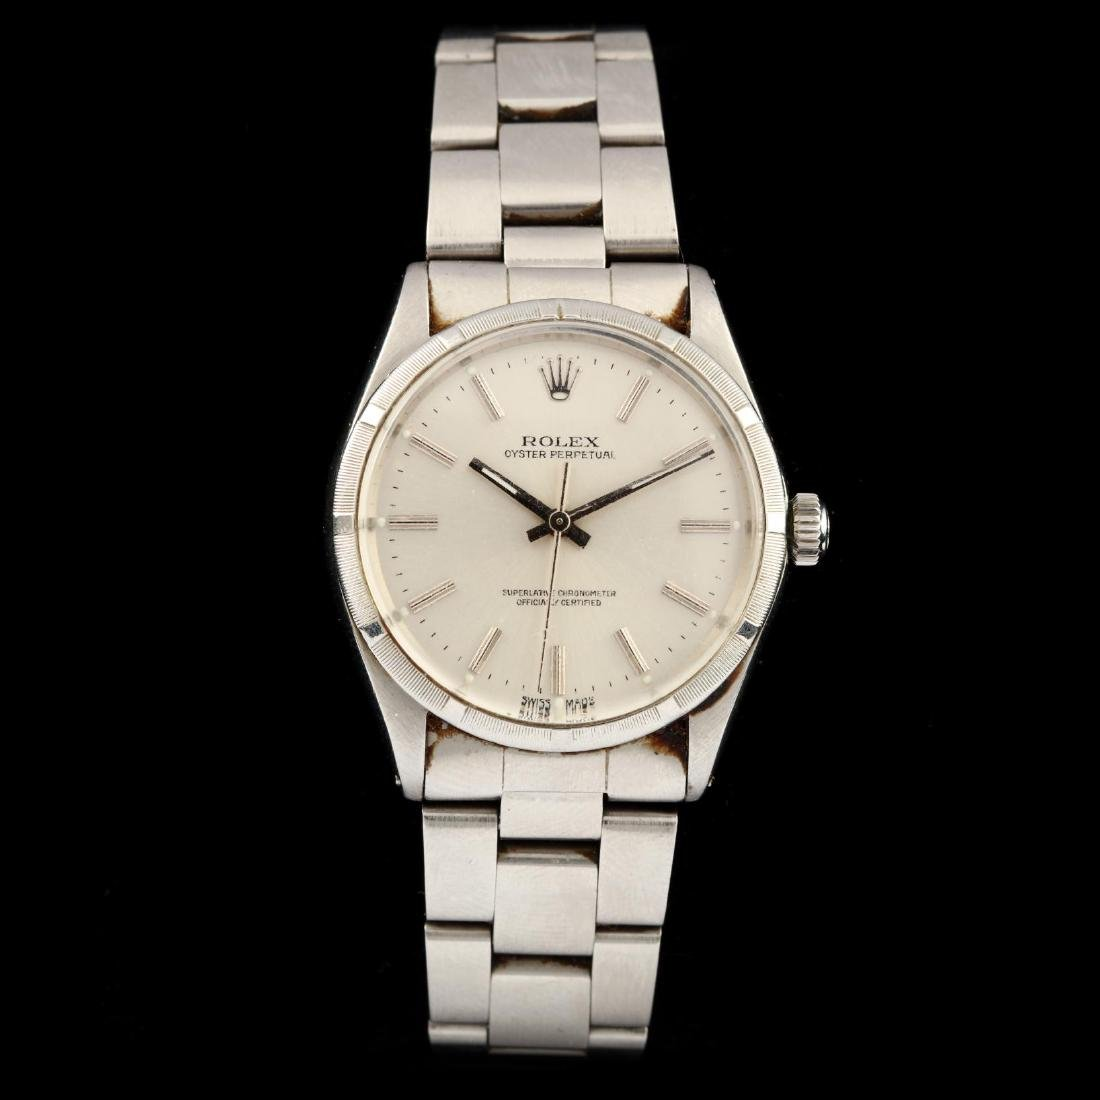 """Gent's Stainless Steel """"Oyster Perpetual"""" Watch, Rolex"""